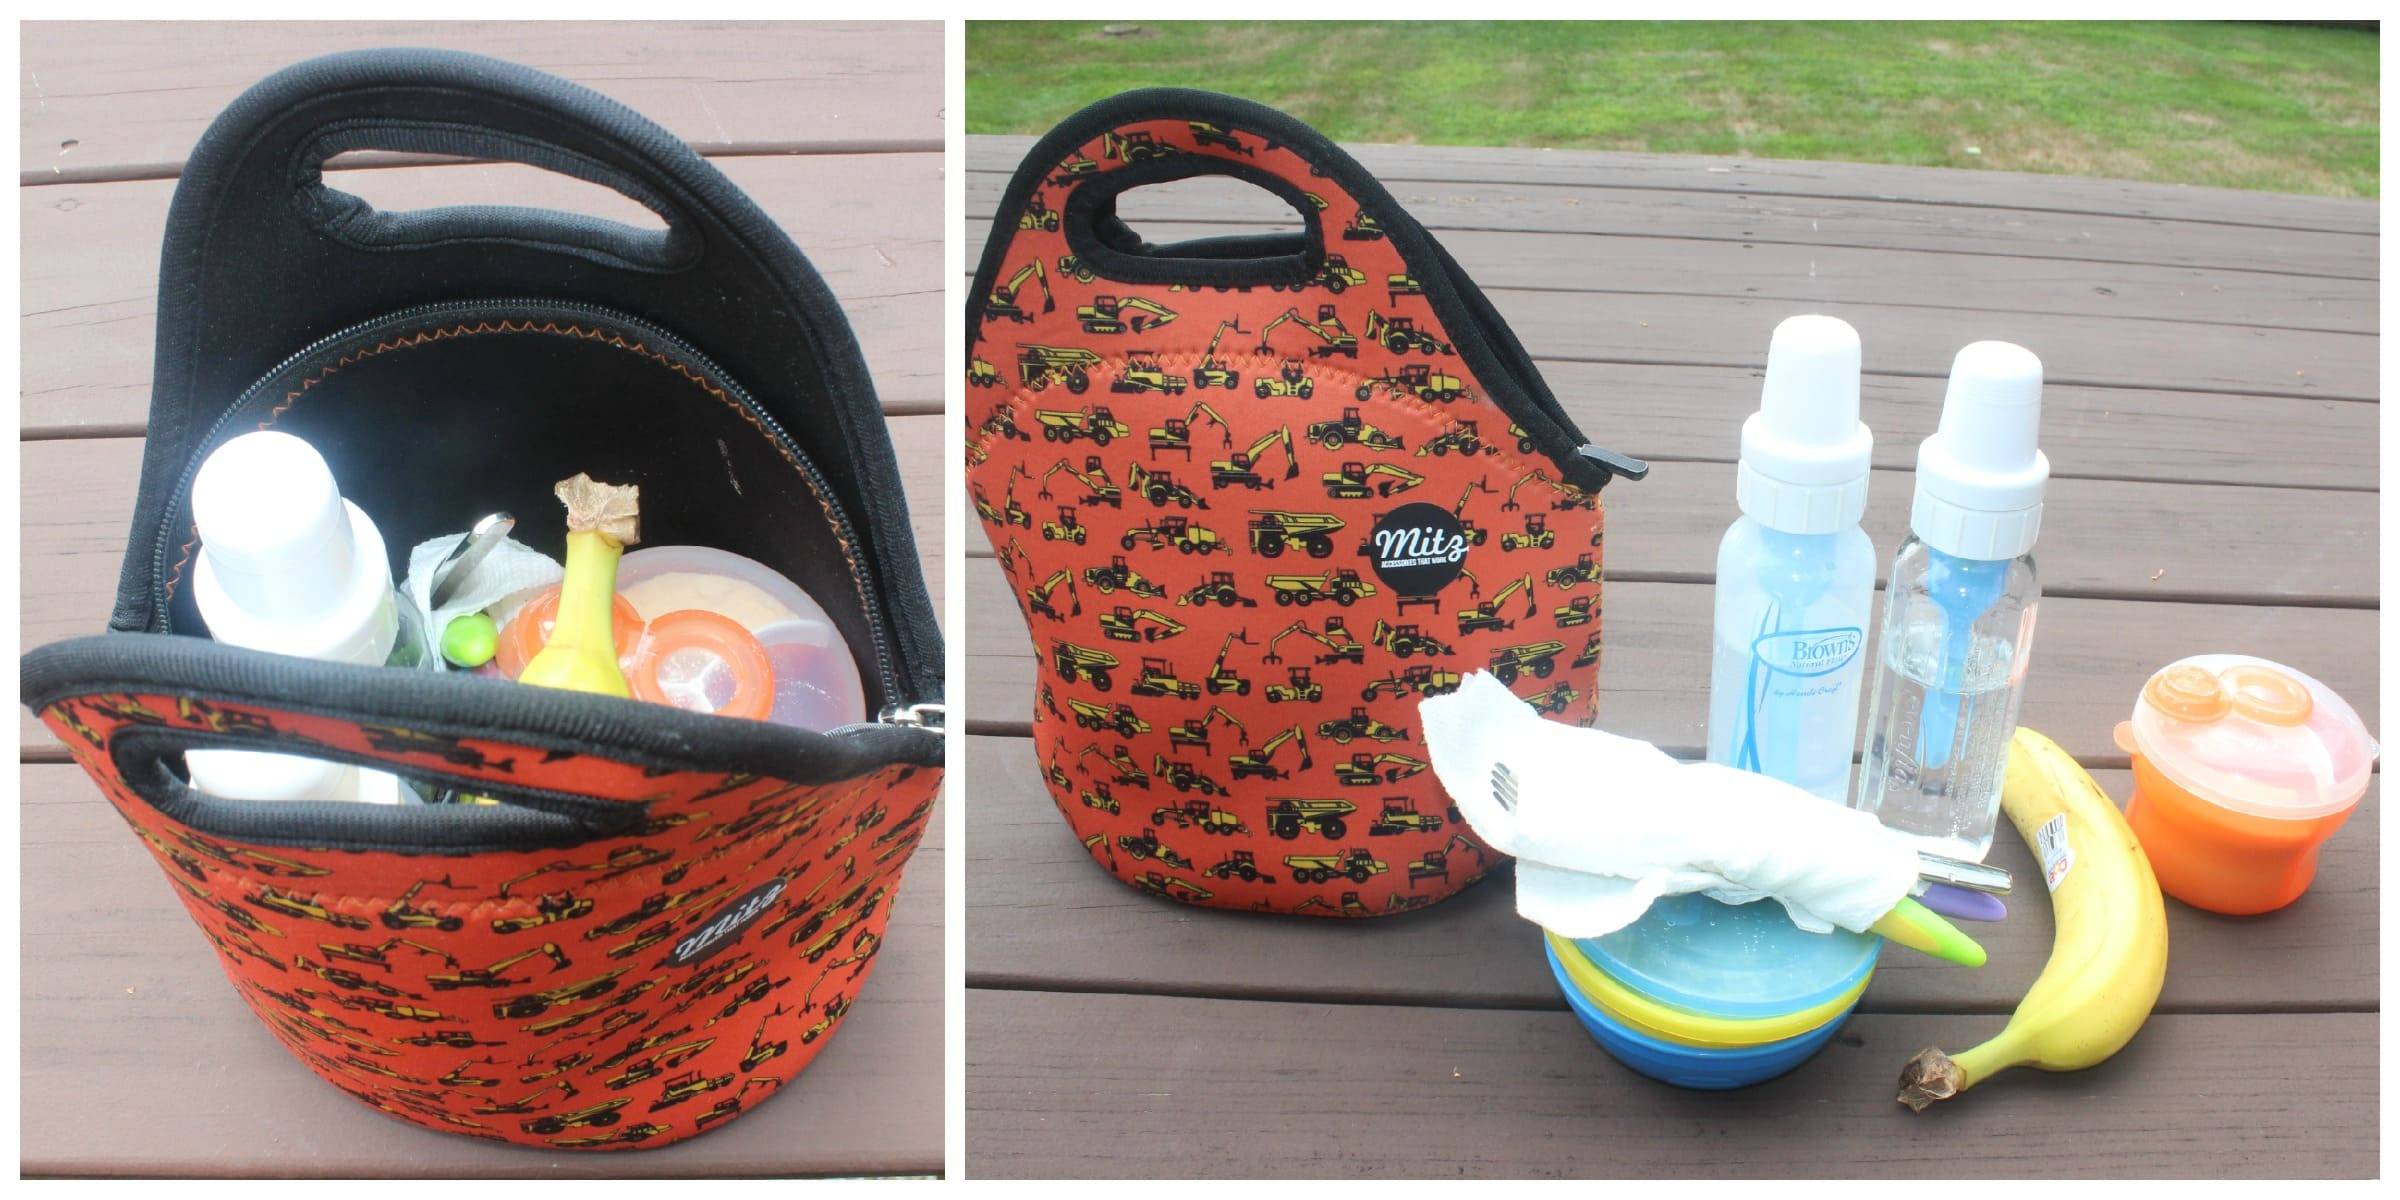 5 Reasons This Mitz Insulated Lunch Bag Is A Must-Have For Your Child @mitzaccessories